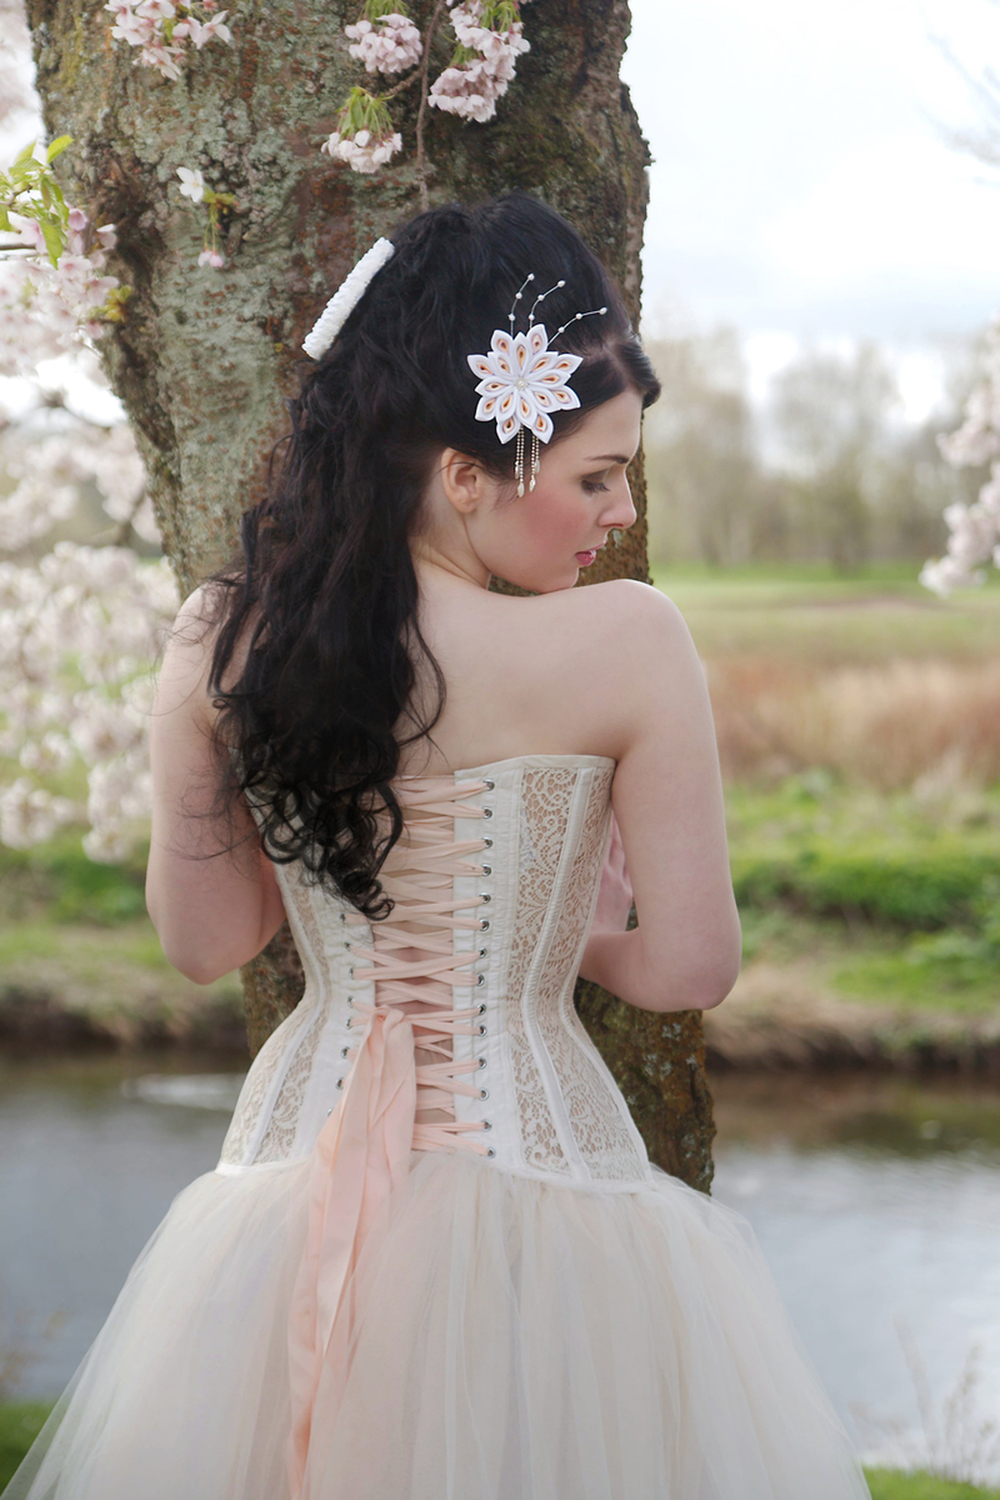 I mage by Lousise  Cantwell Photography. Model, Nicolette McKeown. Featuring accessories by Yume Kanzashi